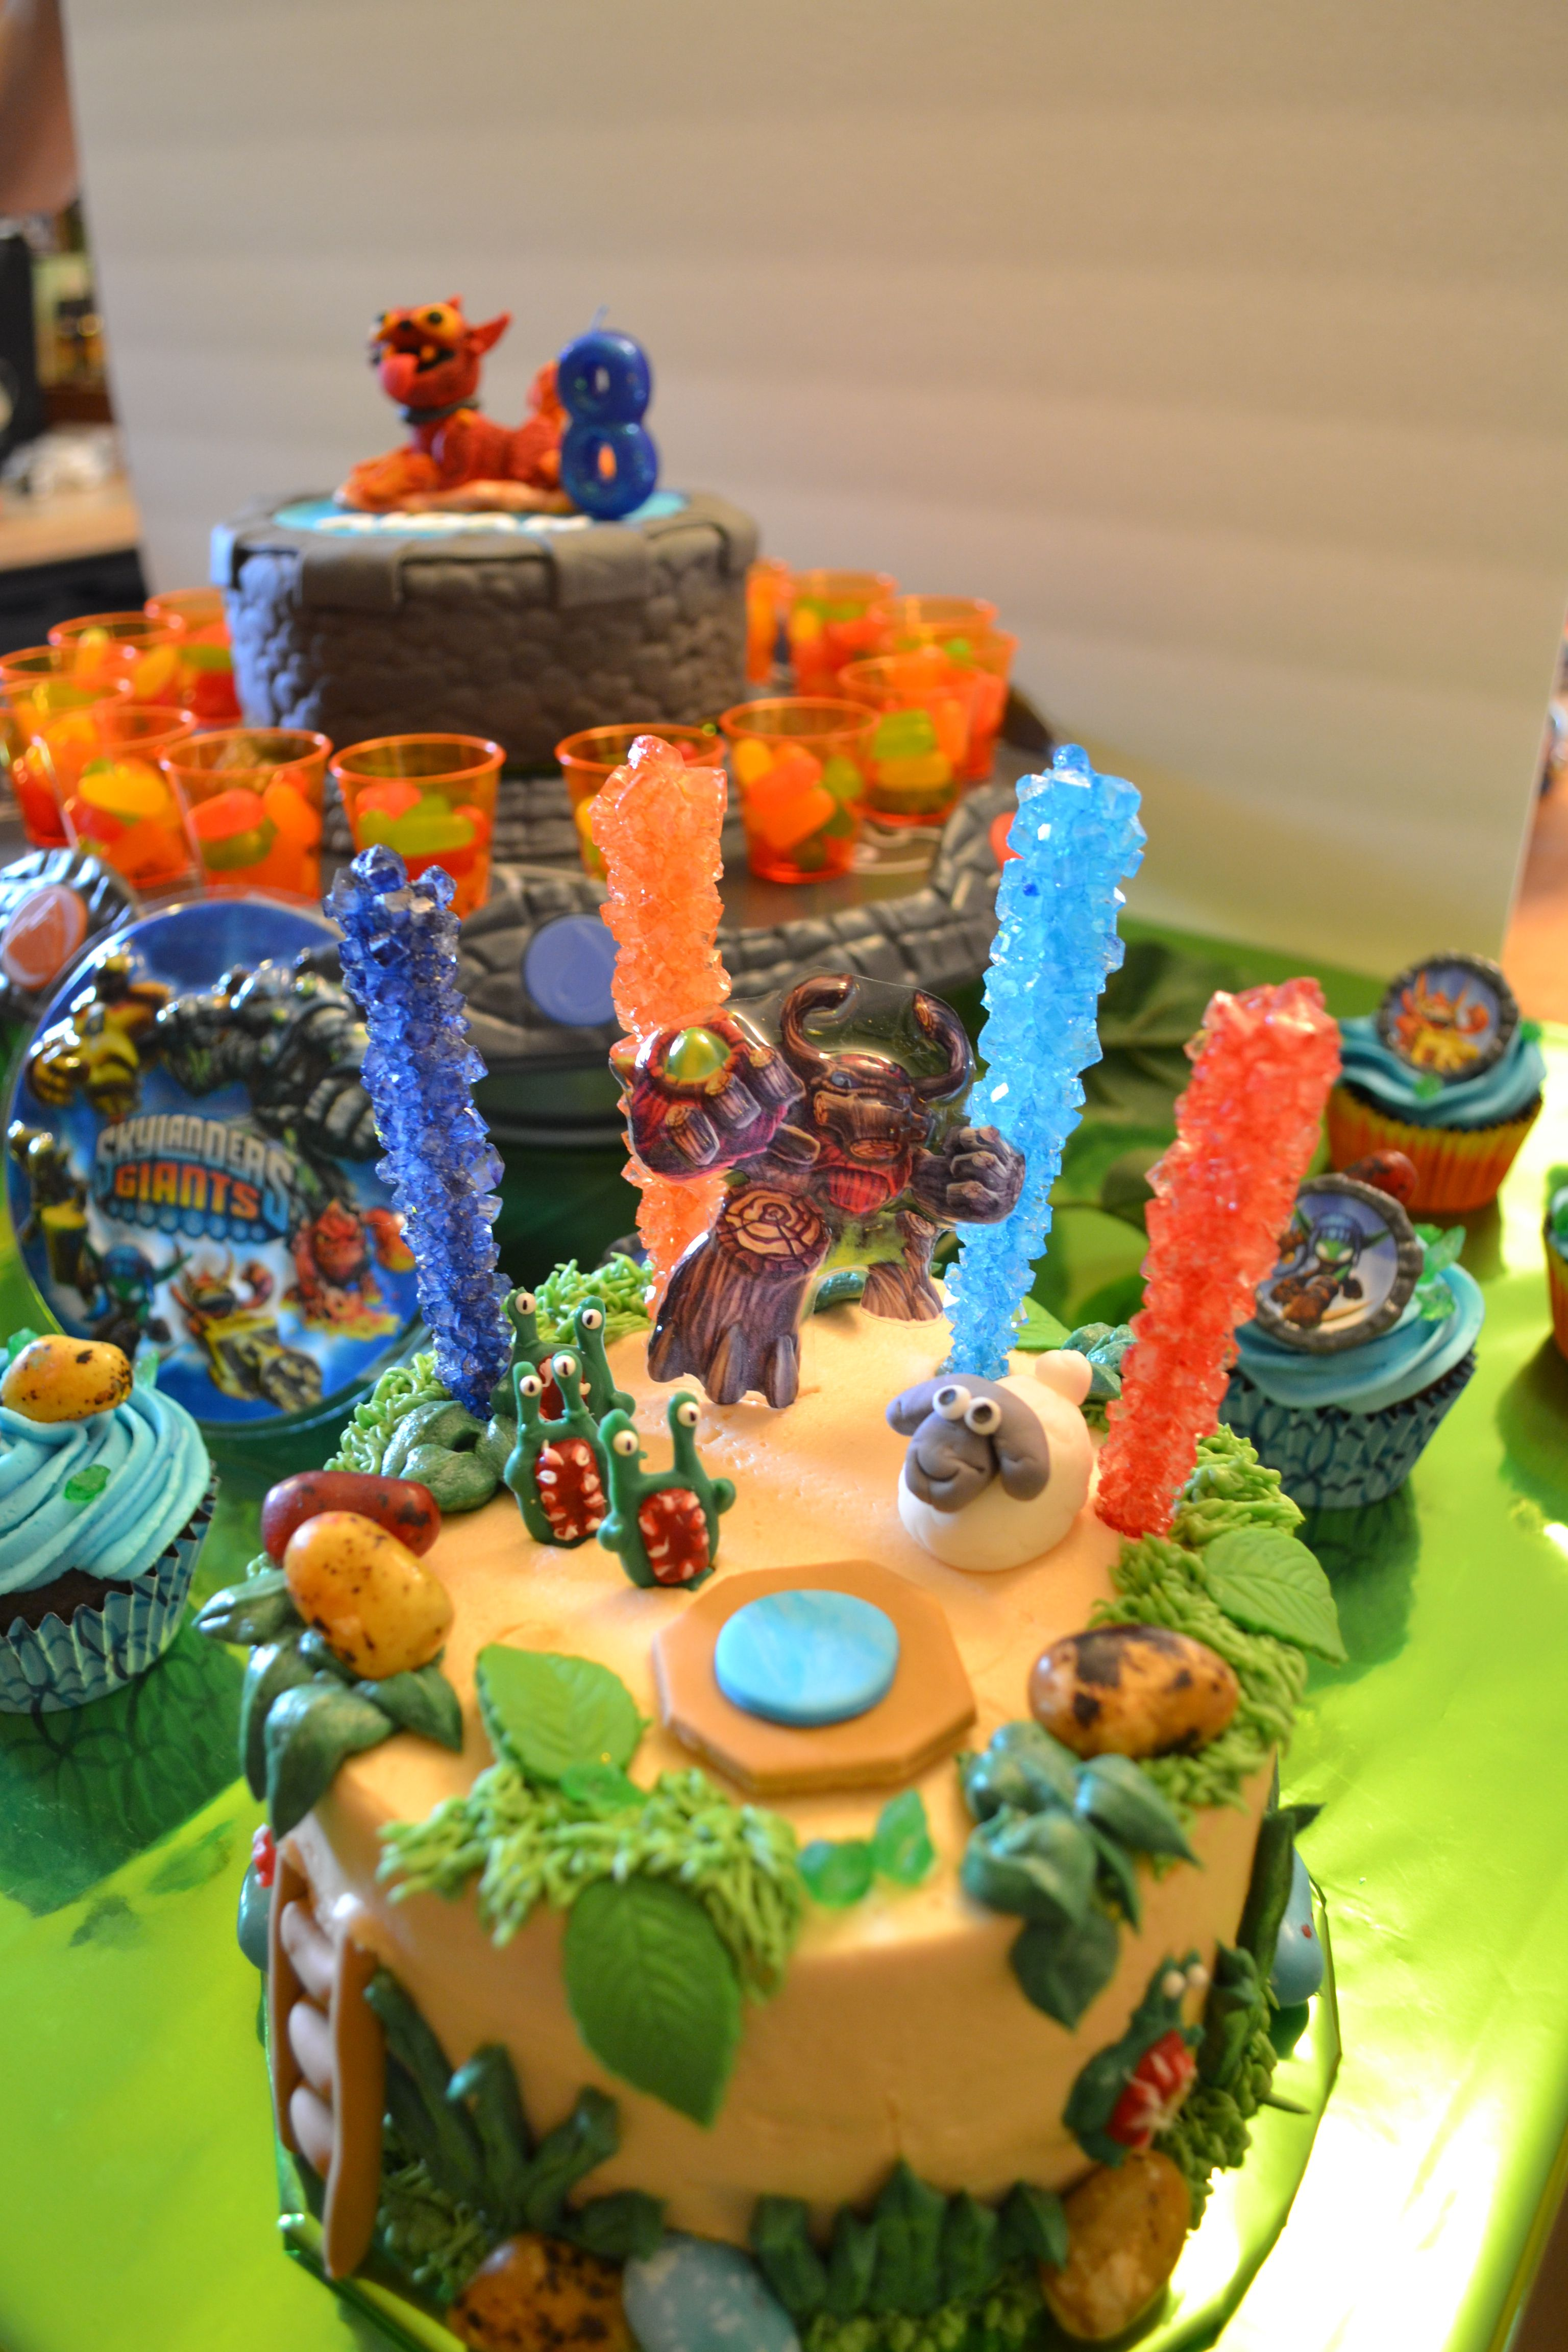 Skylander Birthday Cake Close Up Of Worlds With Sheep And